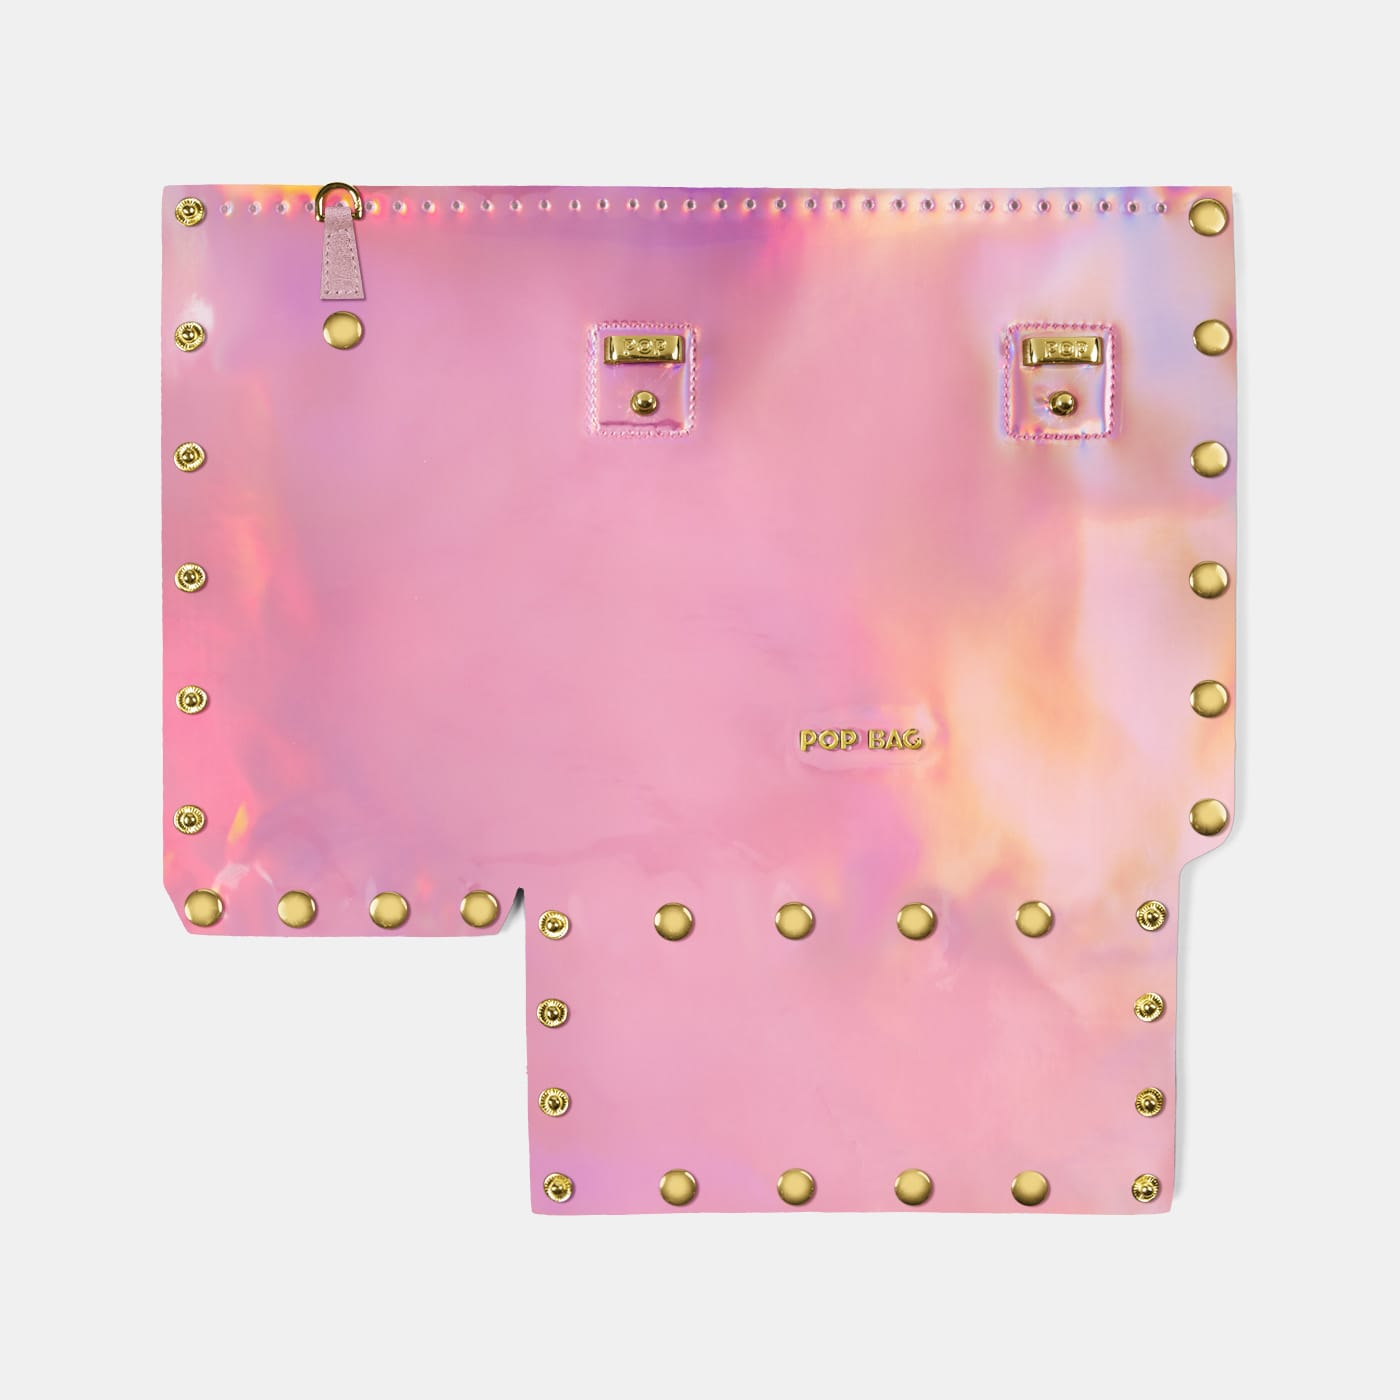 Pop Aurora Front Panel - Pink Iridescent - Small